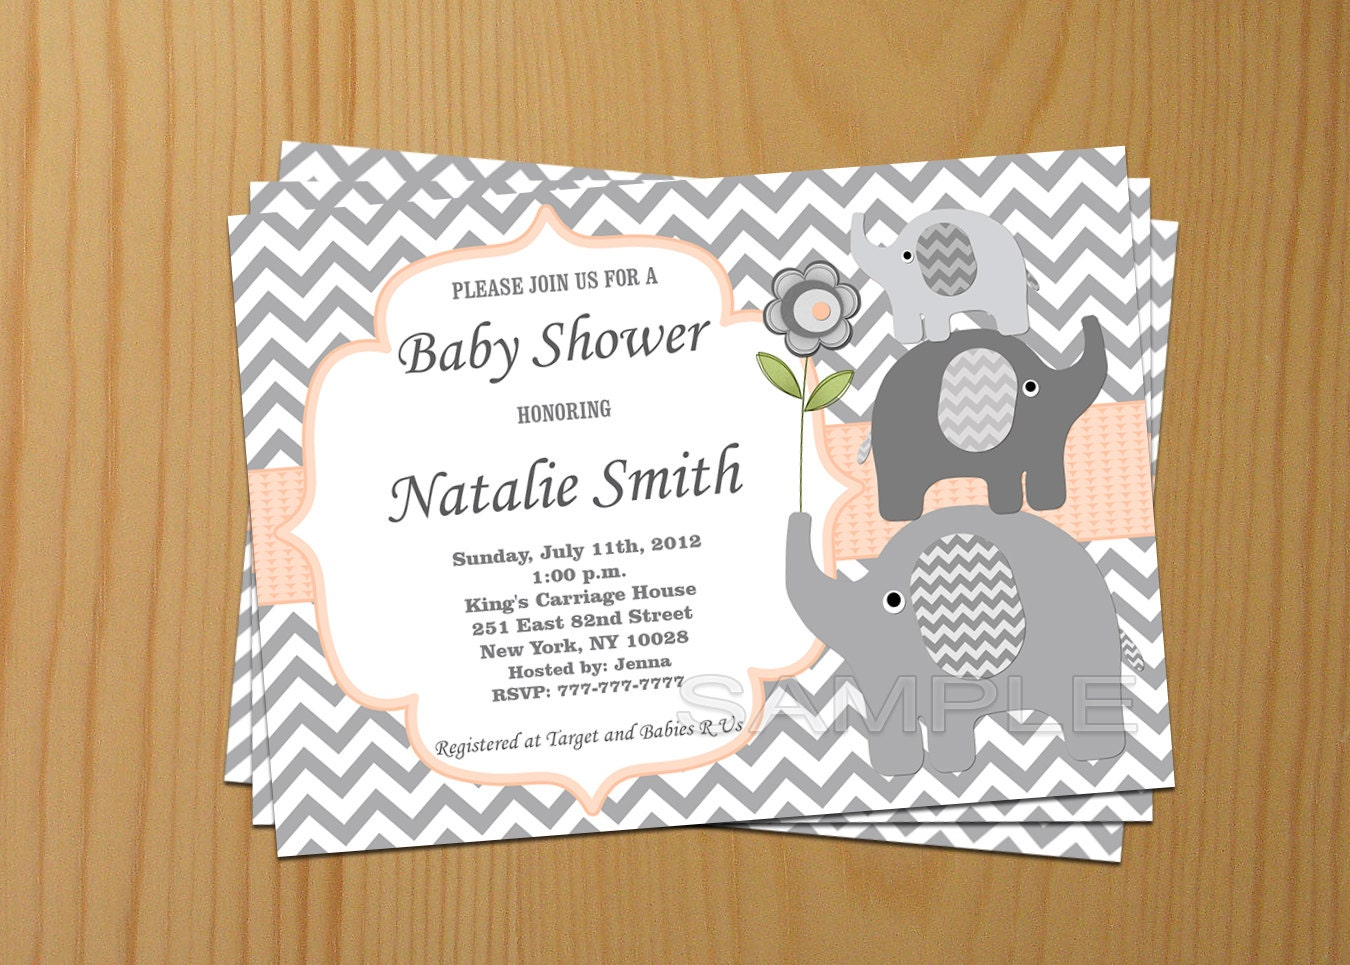 free customizable invitation templates - Picture Ideas References